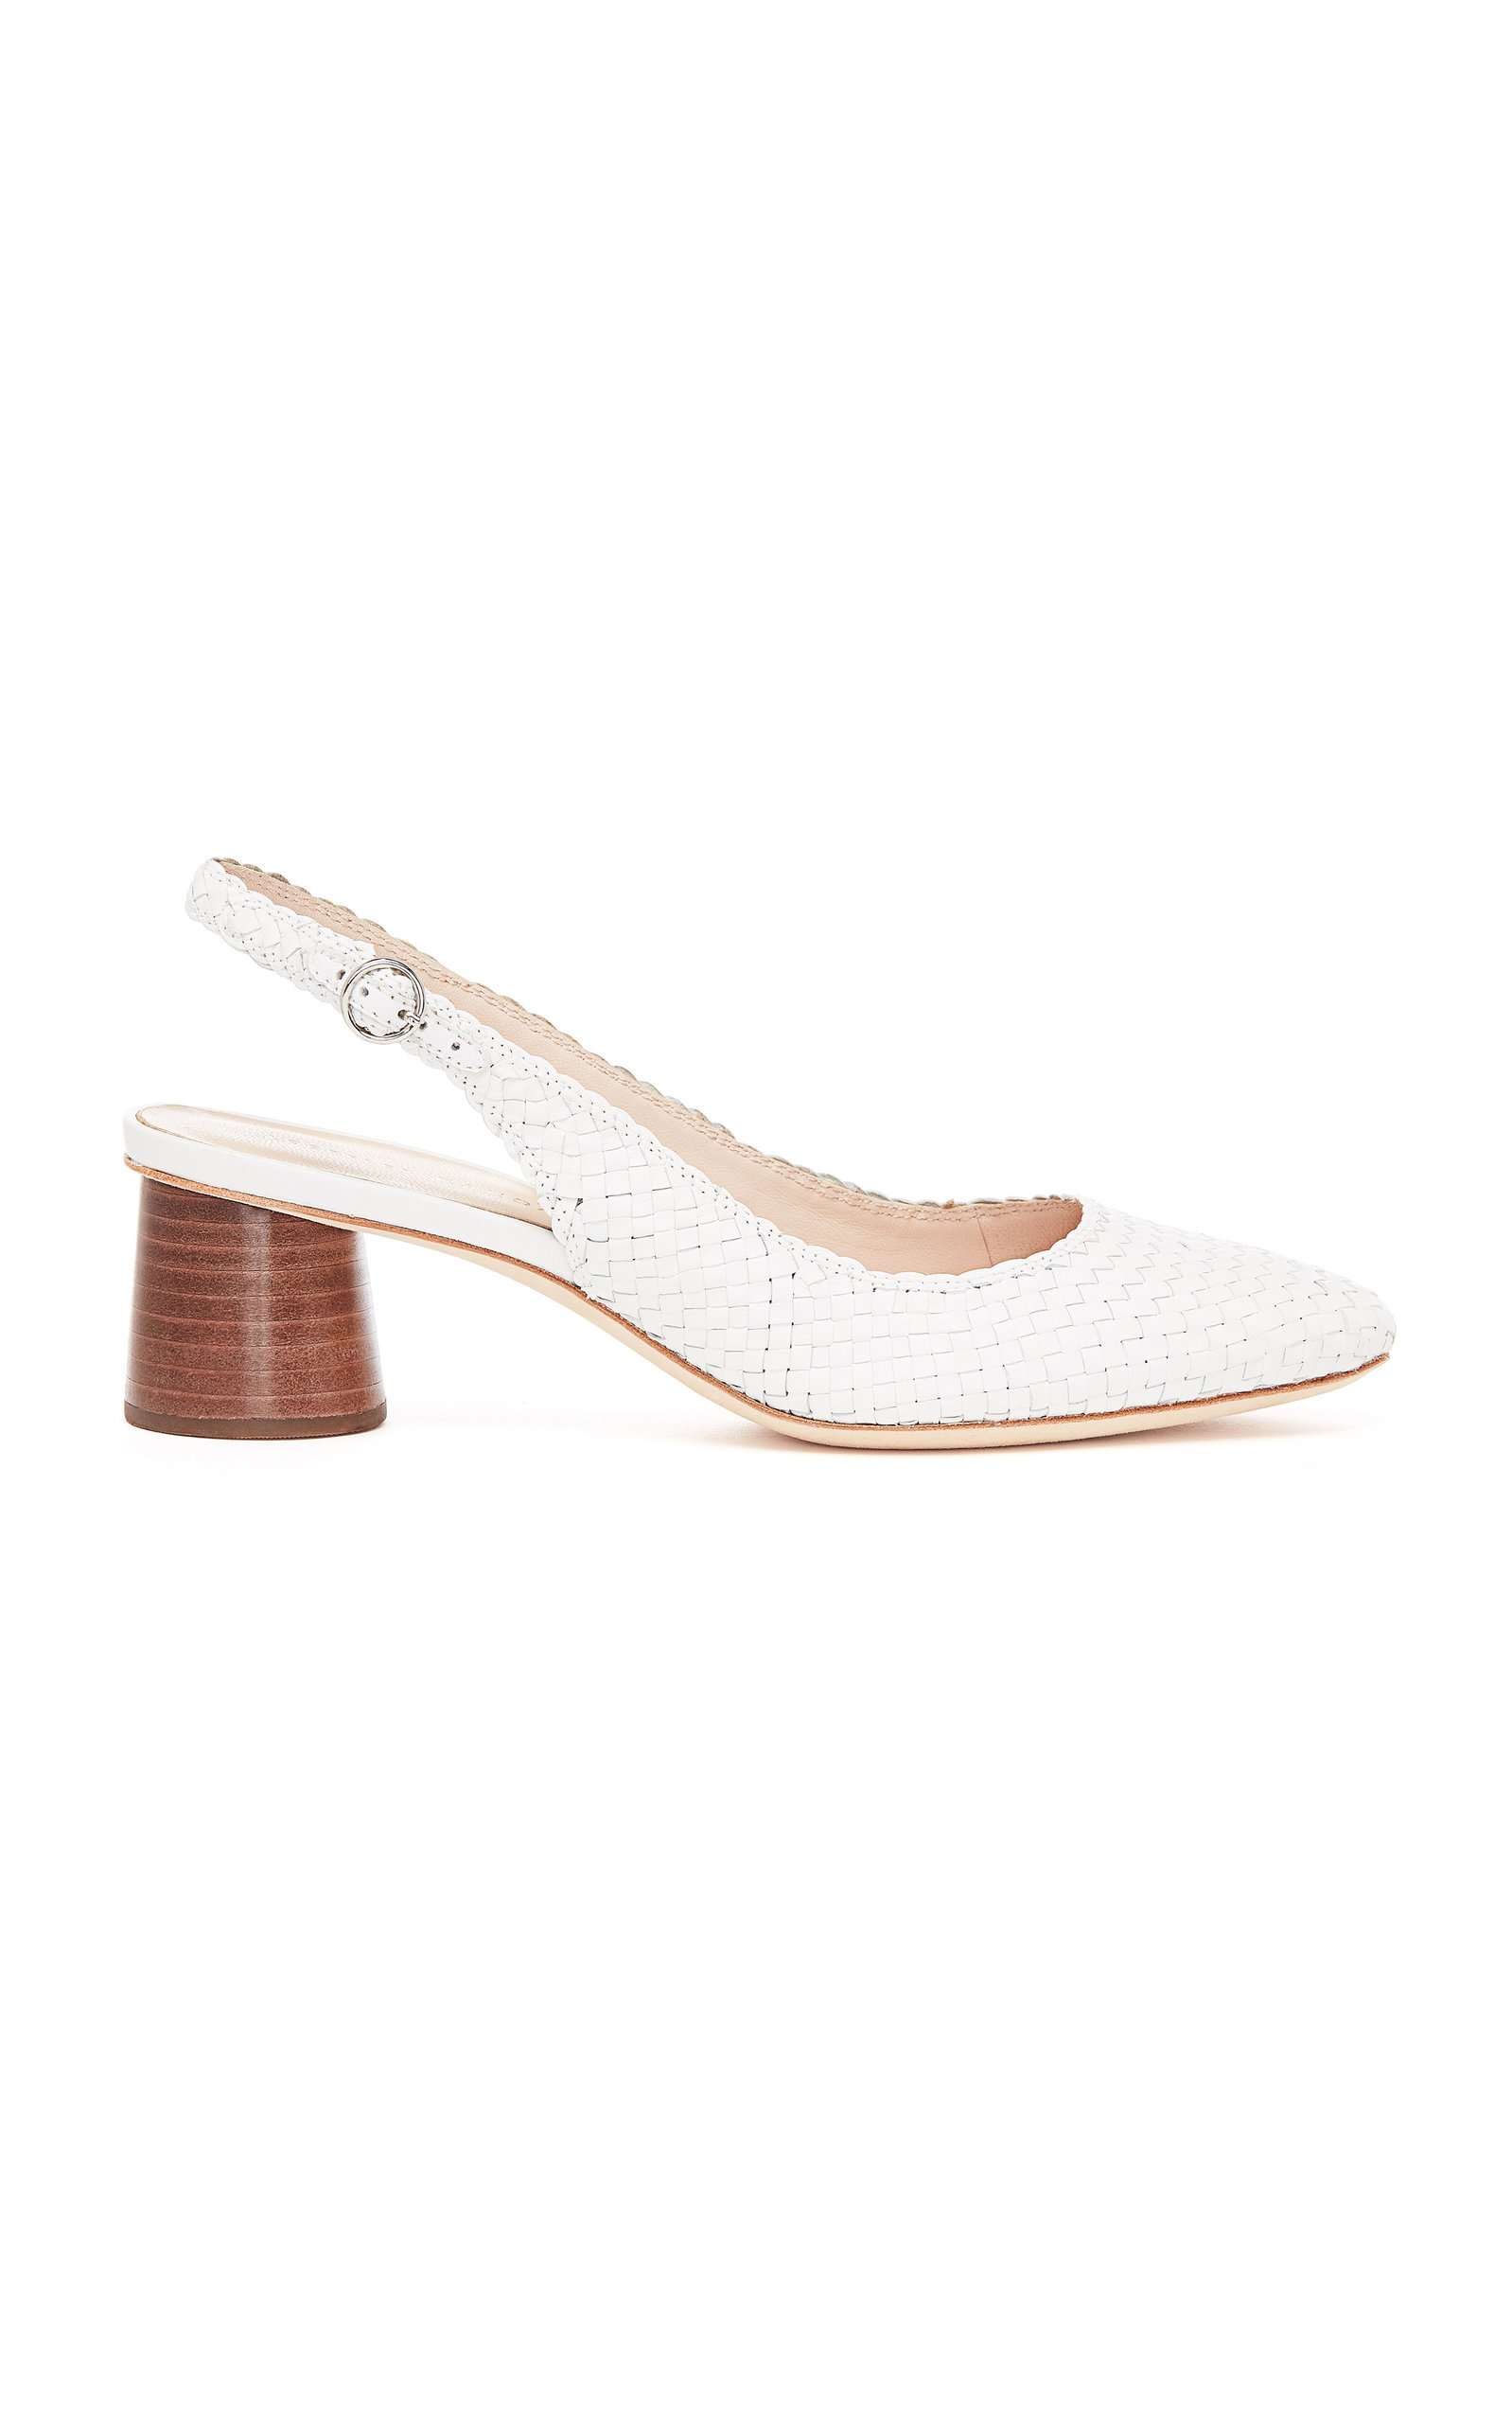 Martine Woven Leather Slingback Pumps